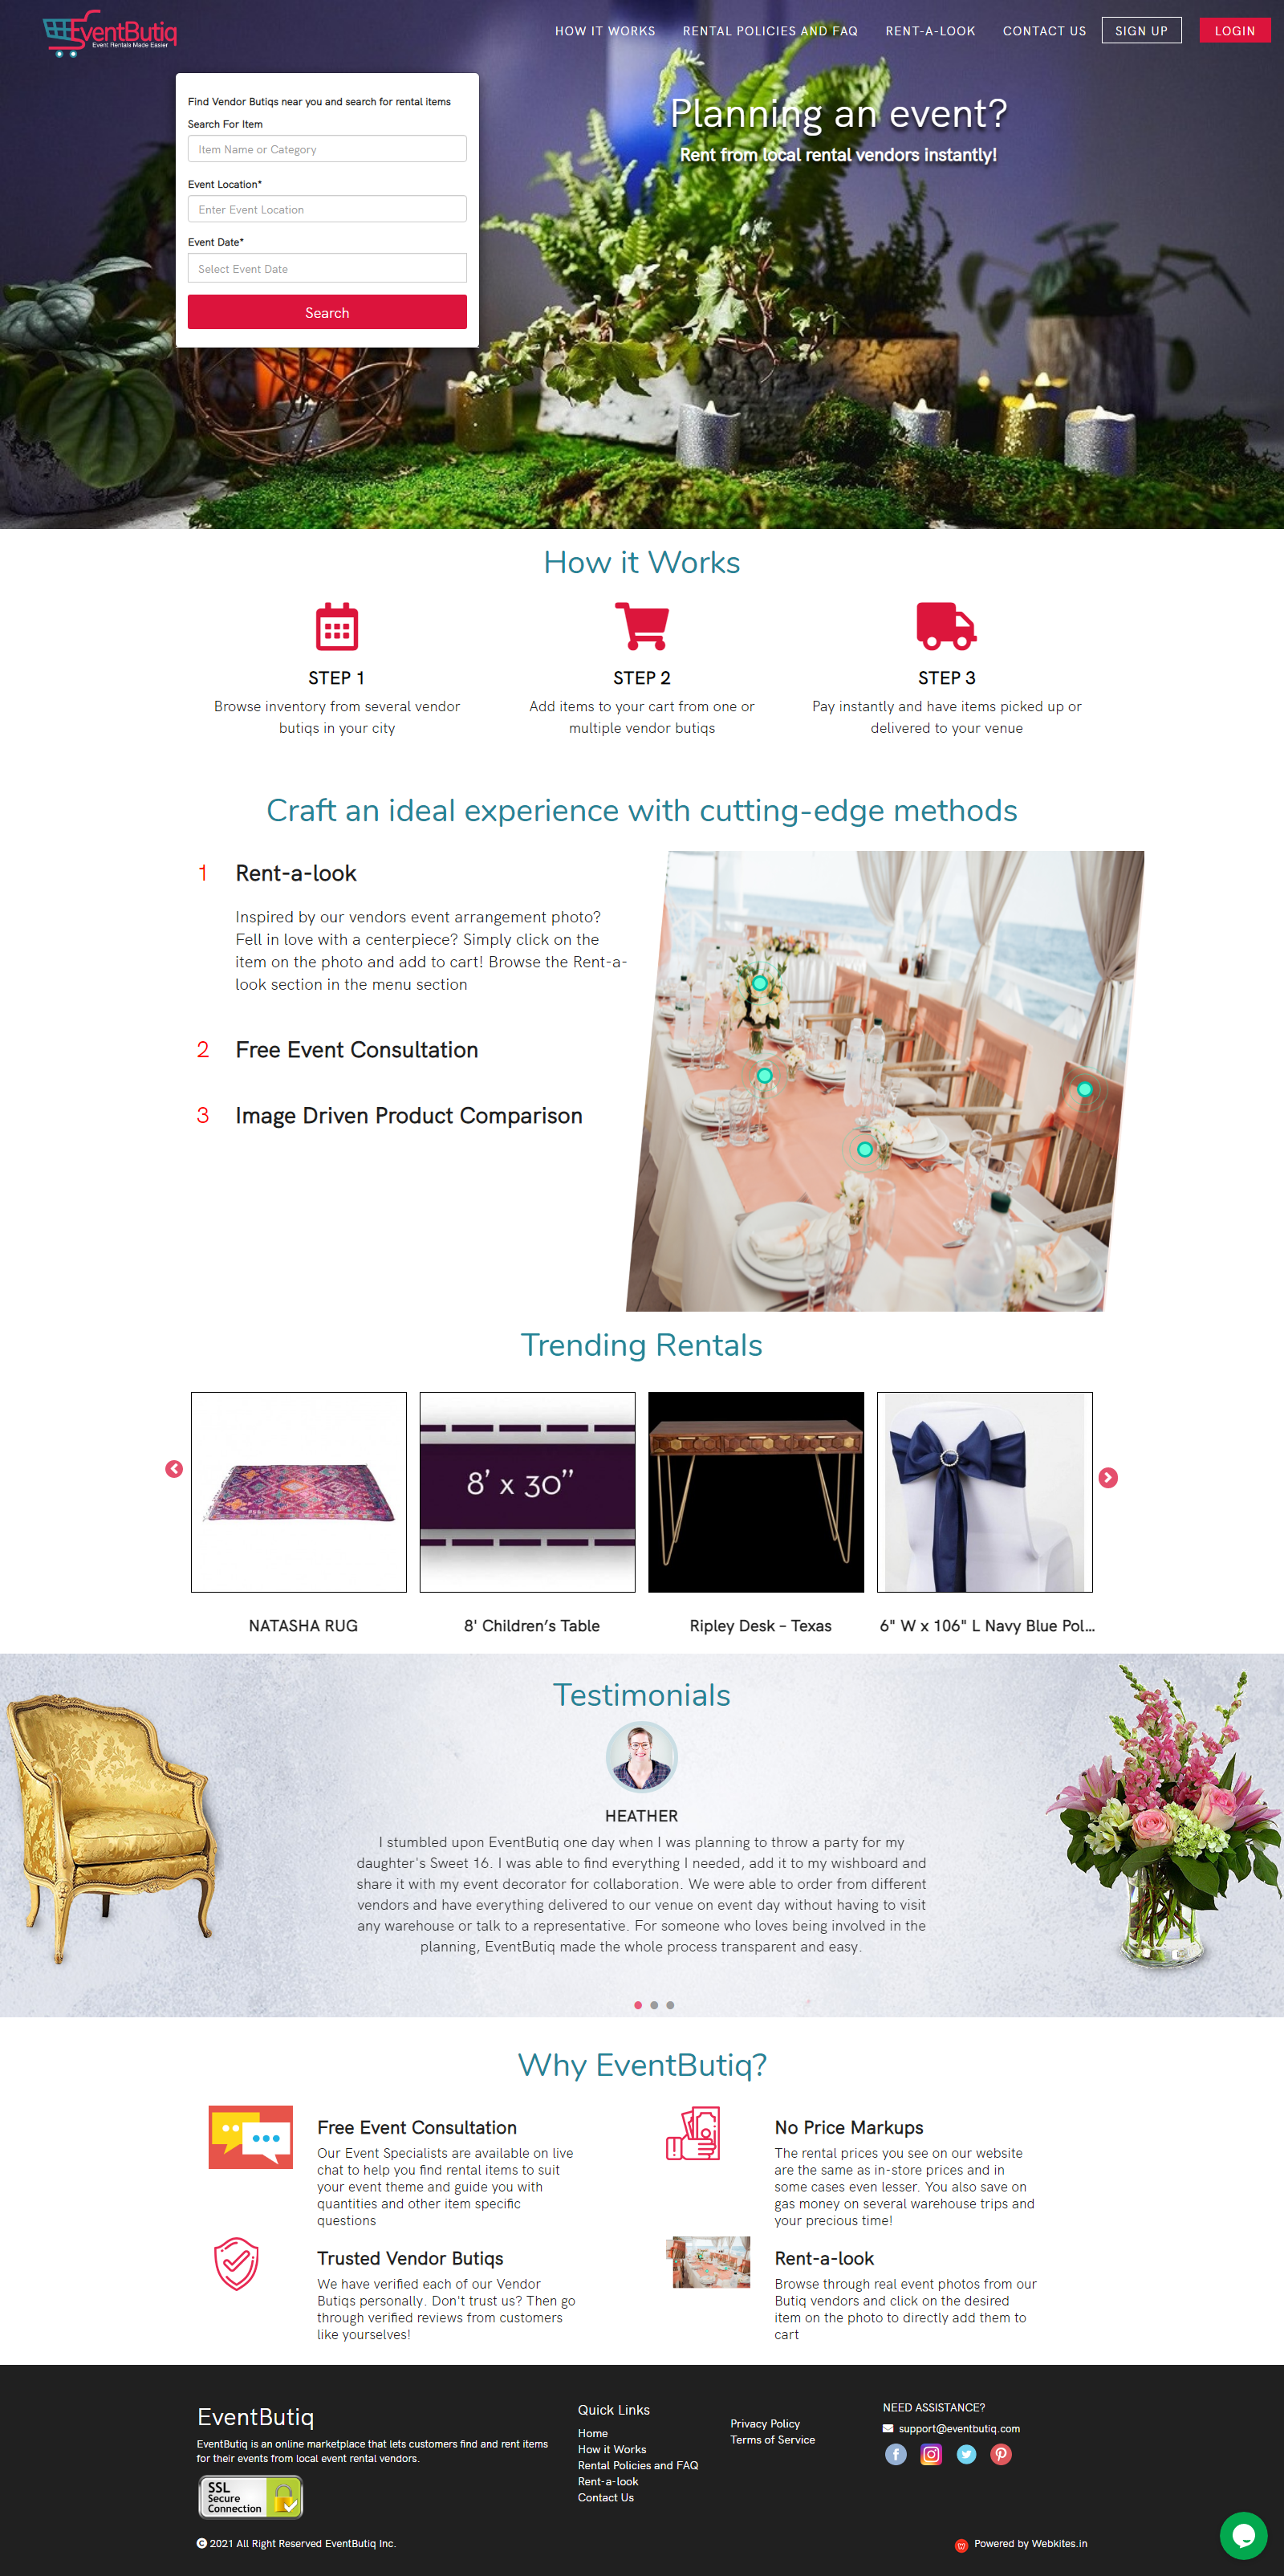 website development work for eventbutiq